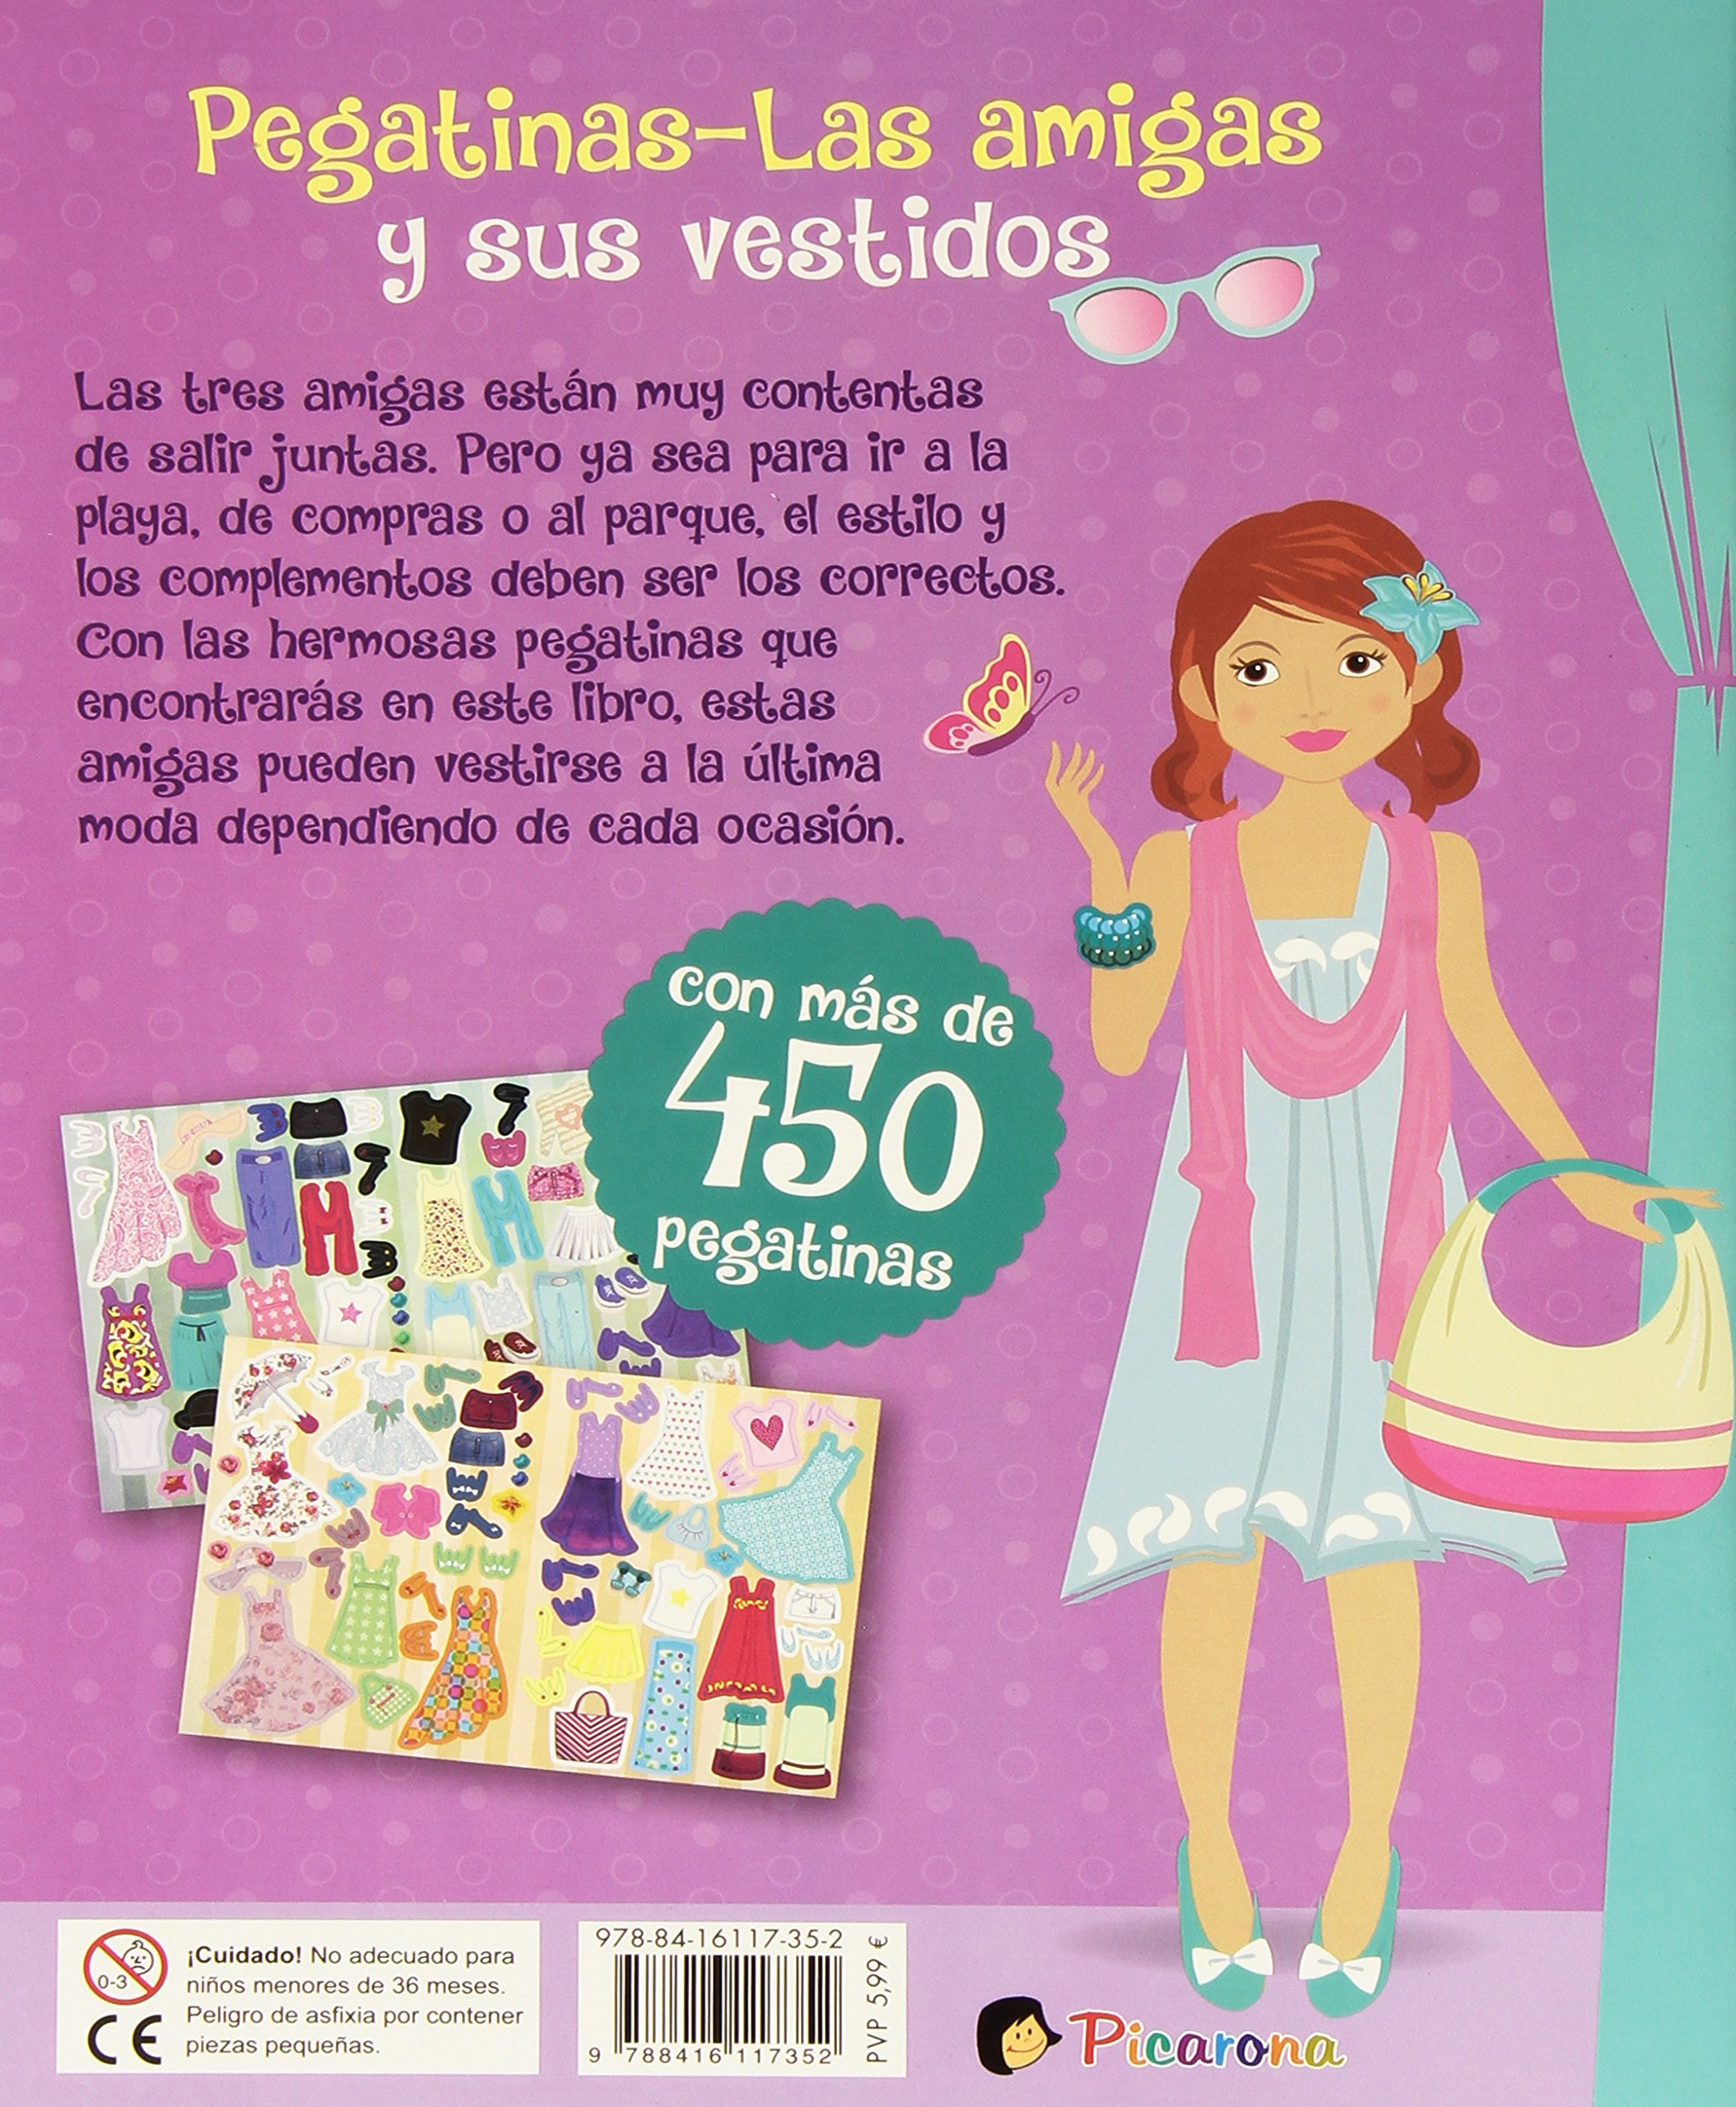 Las amigas y sus vestidos (stickers) (Spanish Edition): Various Authors: 9788416117352: Amazon.com: Books